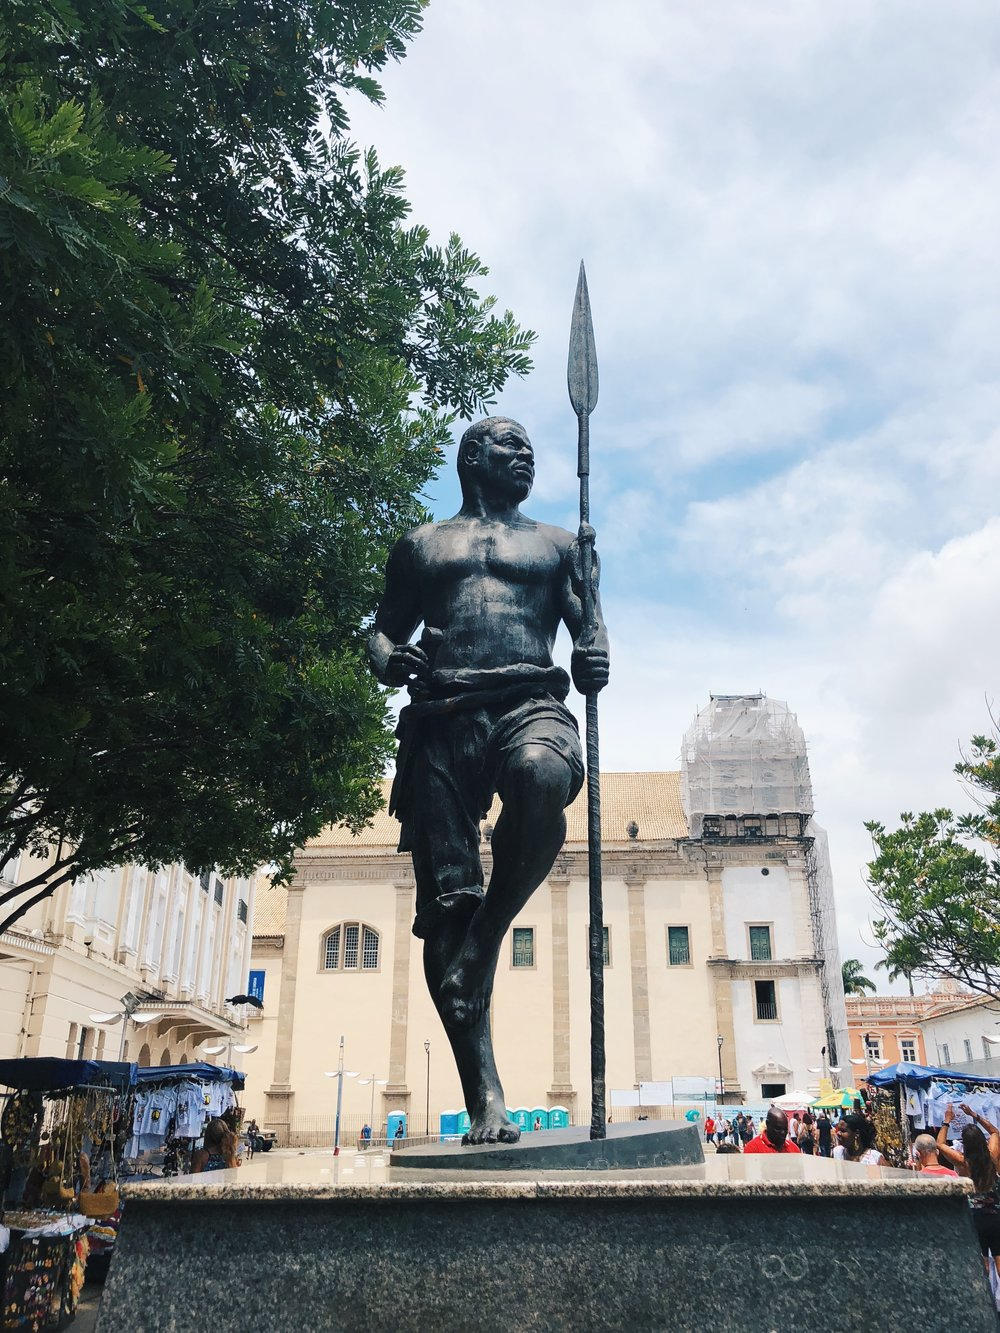 Statue in Pelo commemorating Zumbi dos Palmares, pioneer against the resistance to slavery and colonialism.